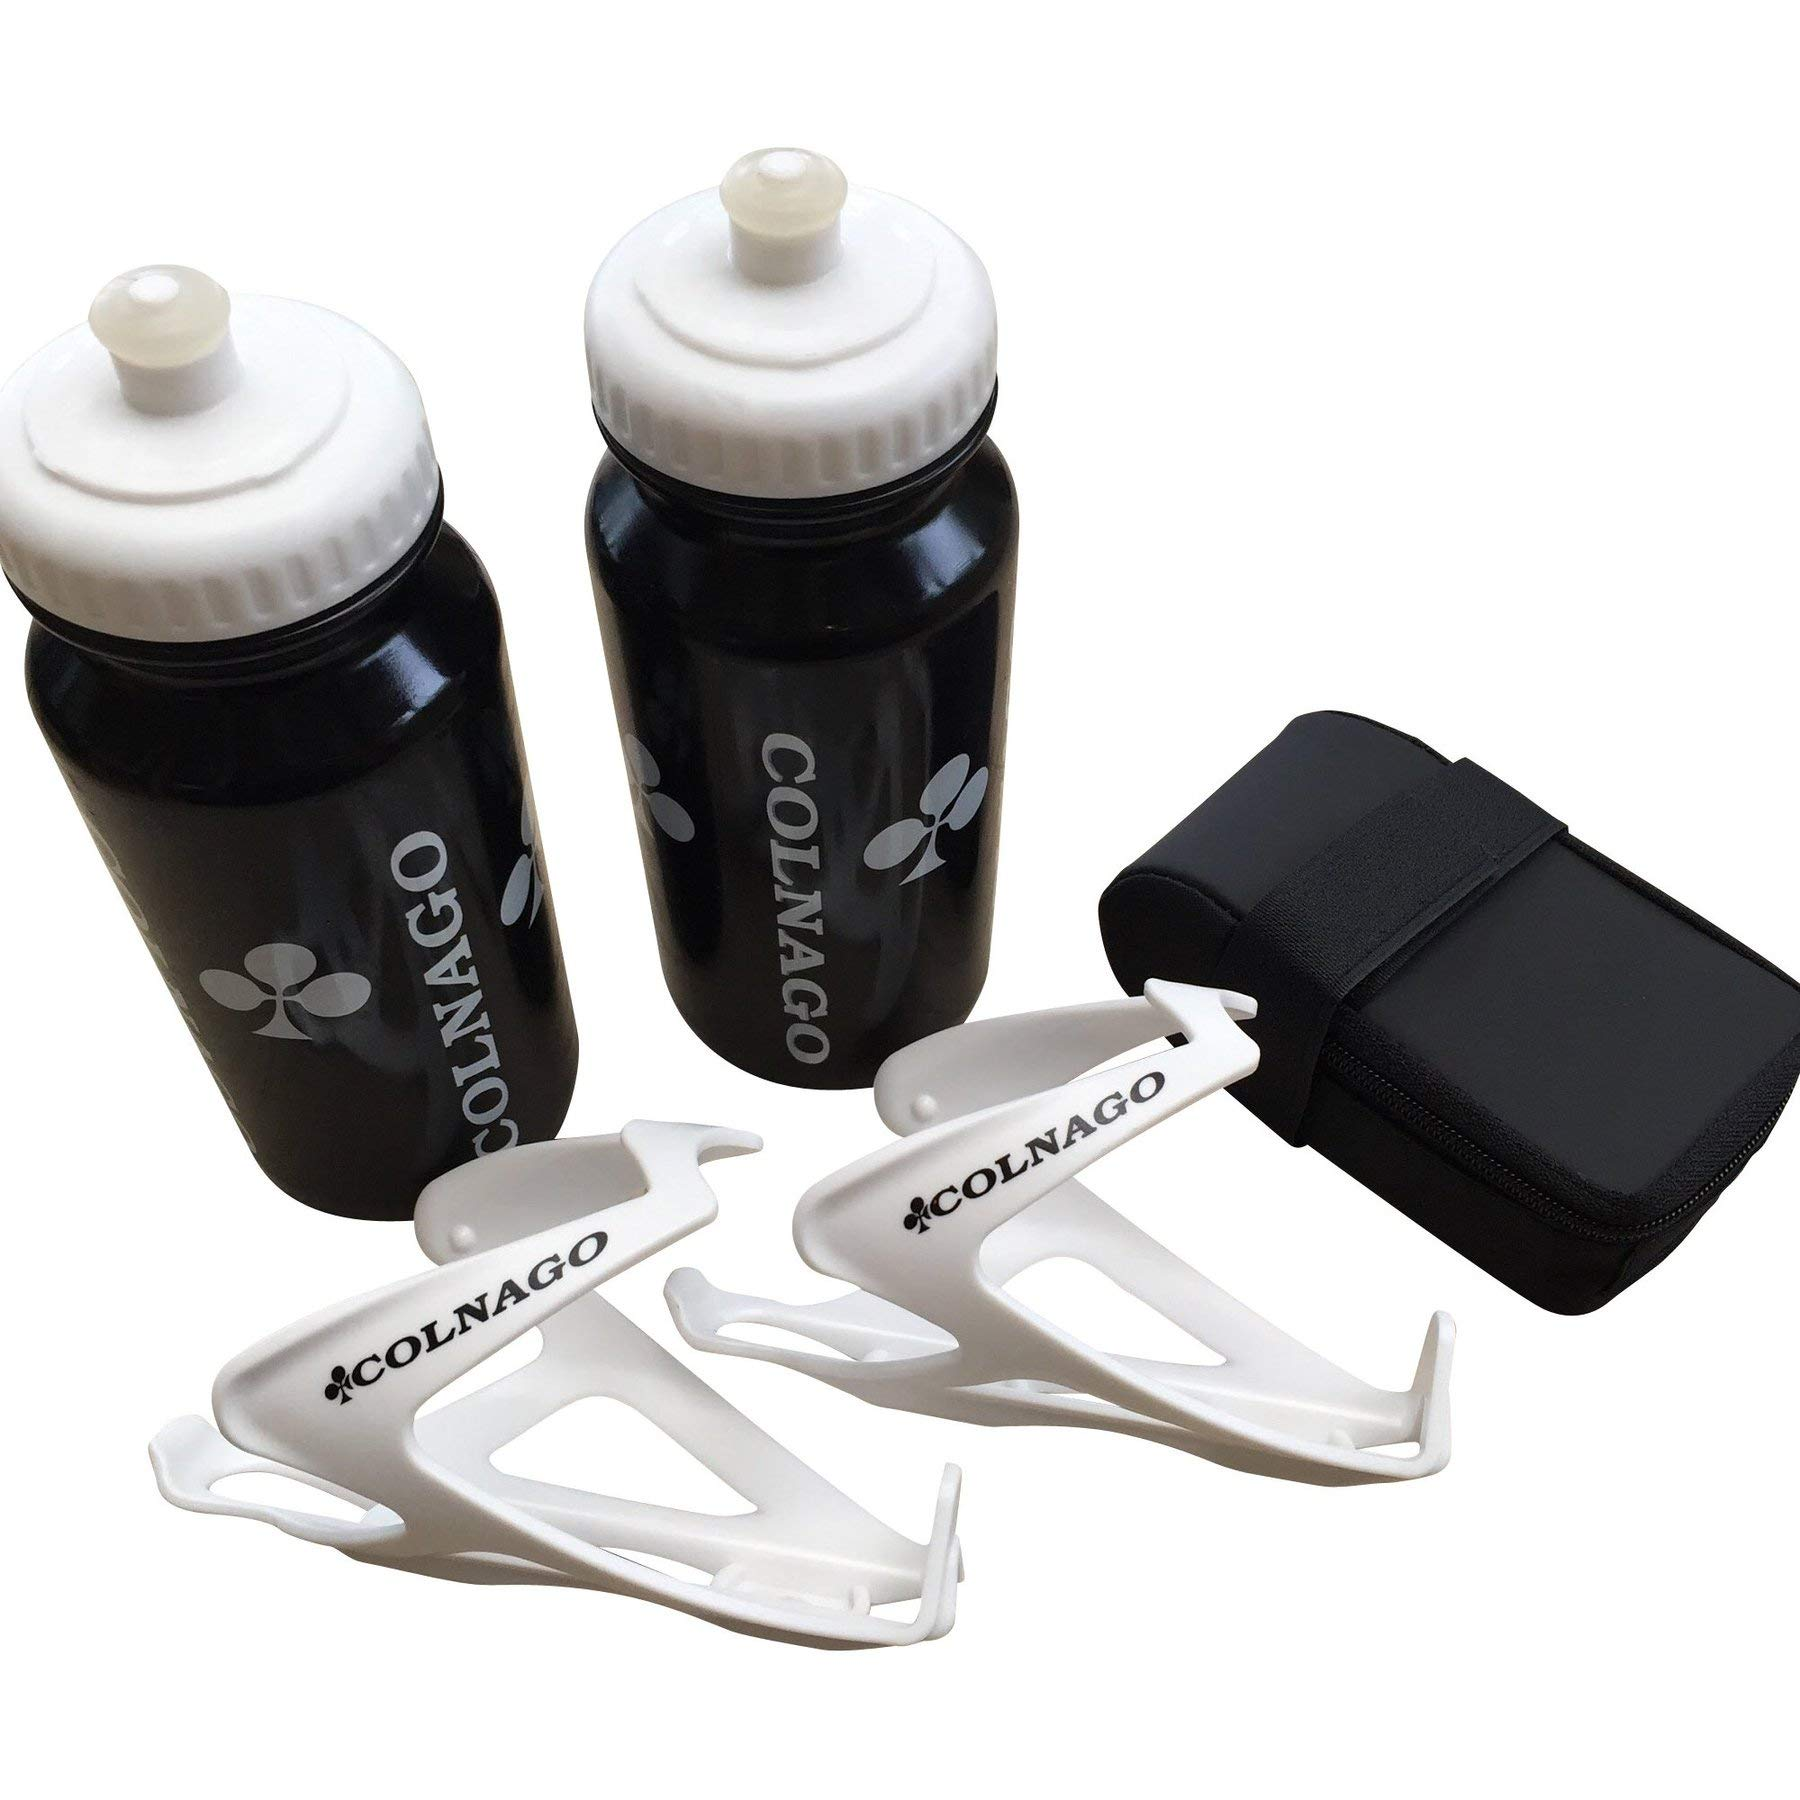 Colnago Bicycle Accessories Combo of 2 Water Bottles, 2 Air Water Bottle Cages & a Bicycle Saddle Bag (2 black water bottles, 2 white water bottle cages and a black saddle bag)